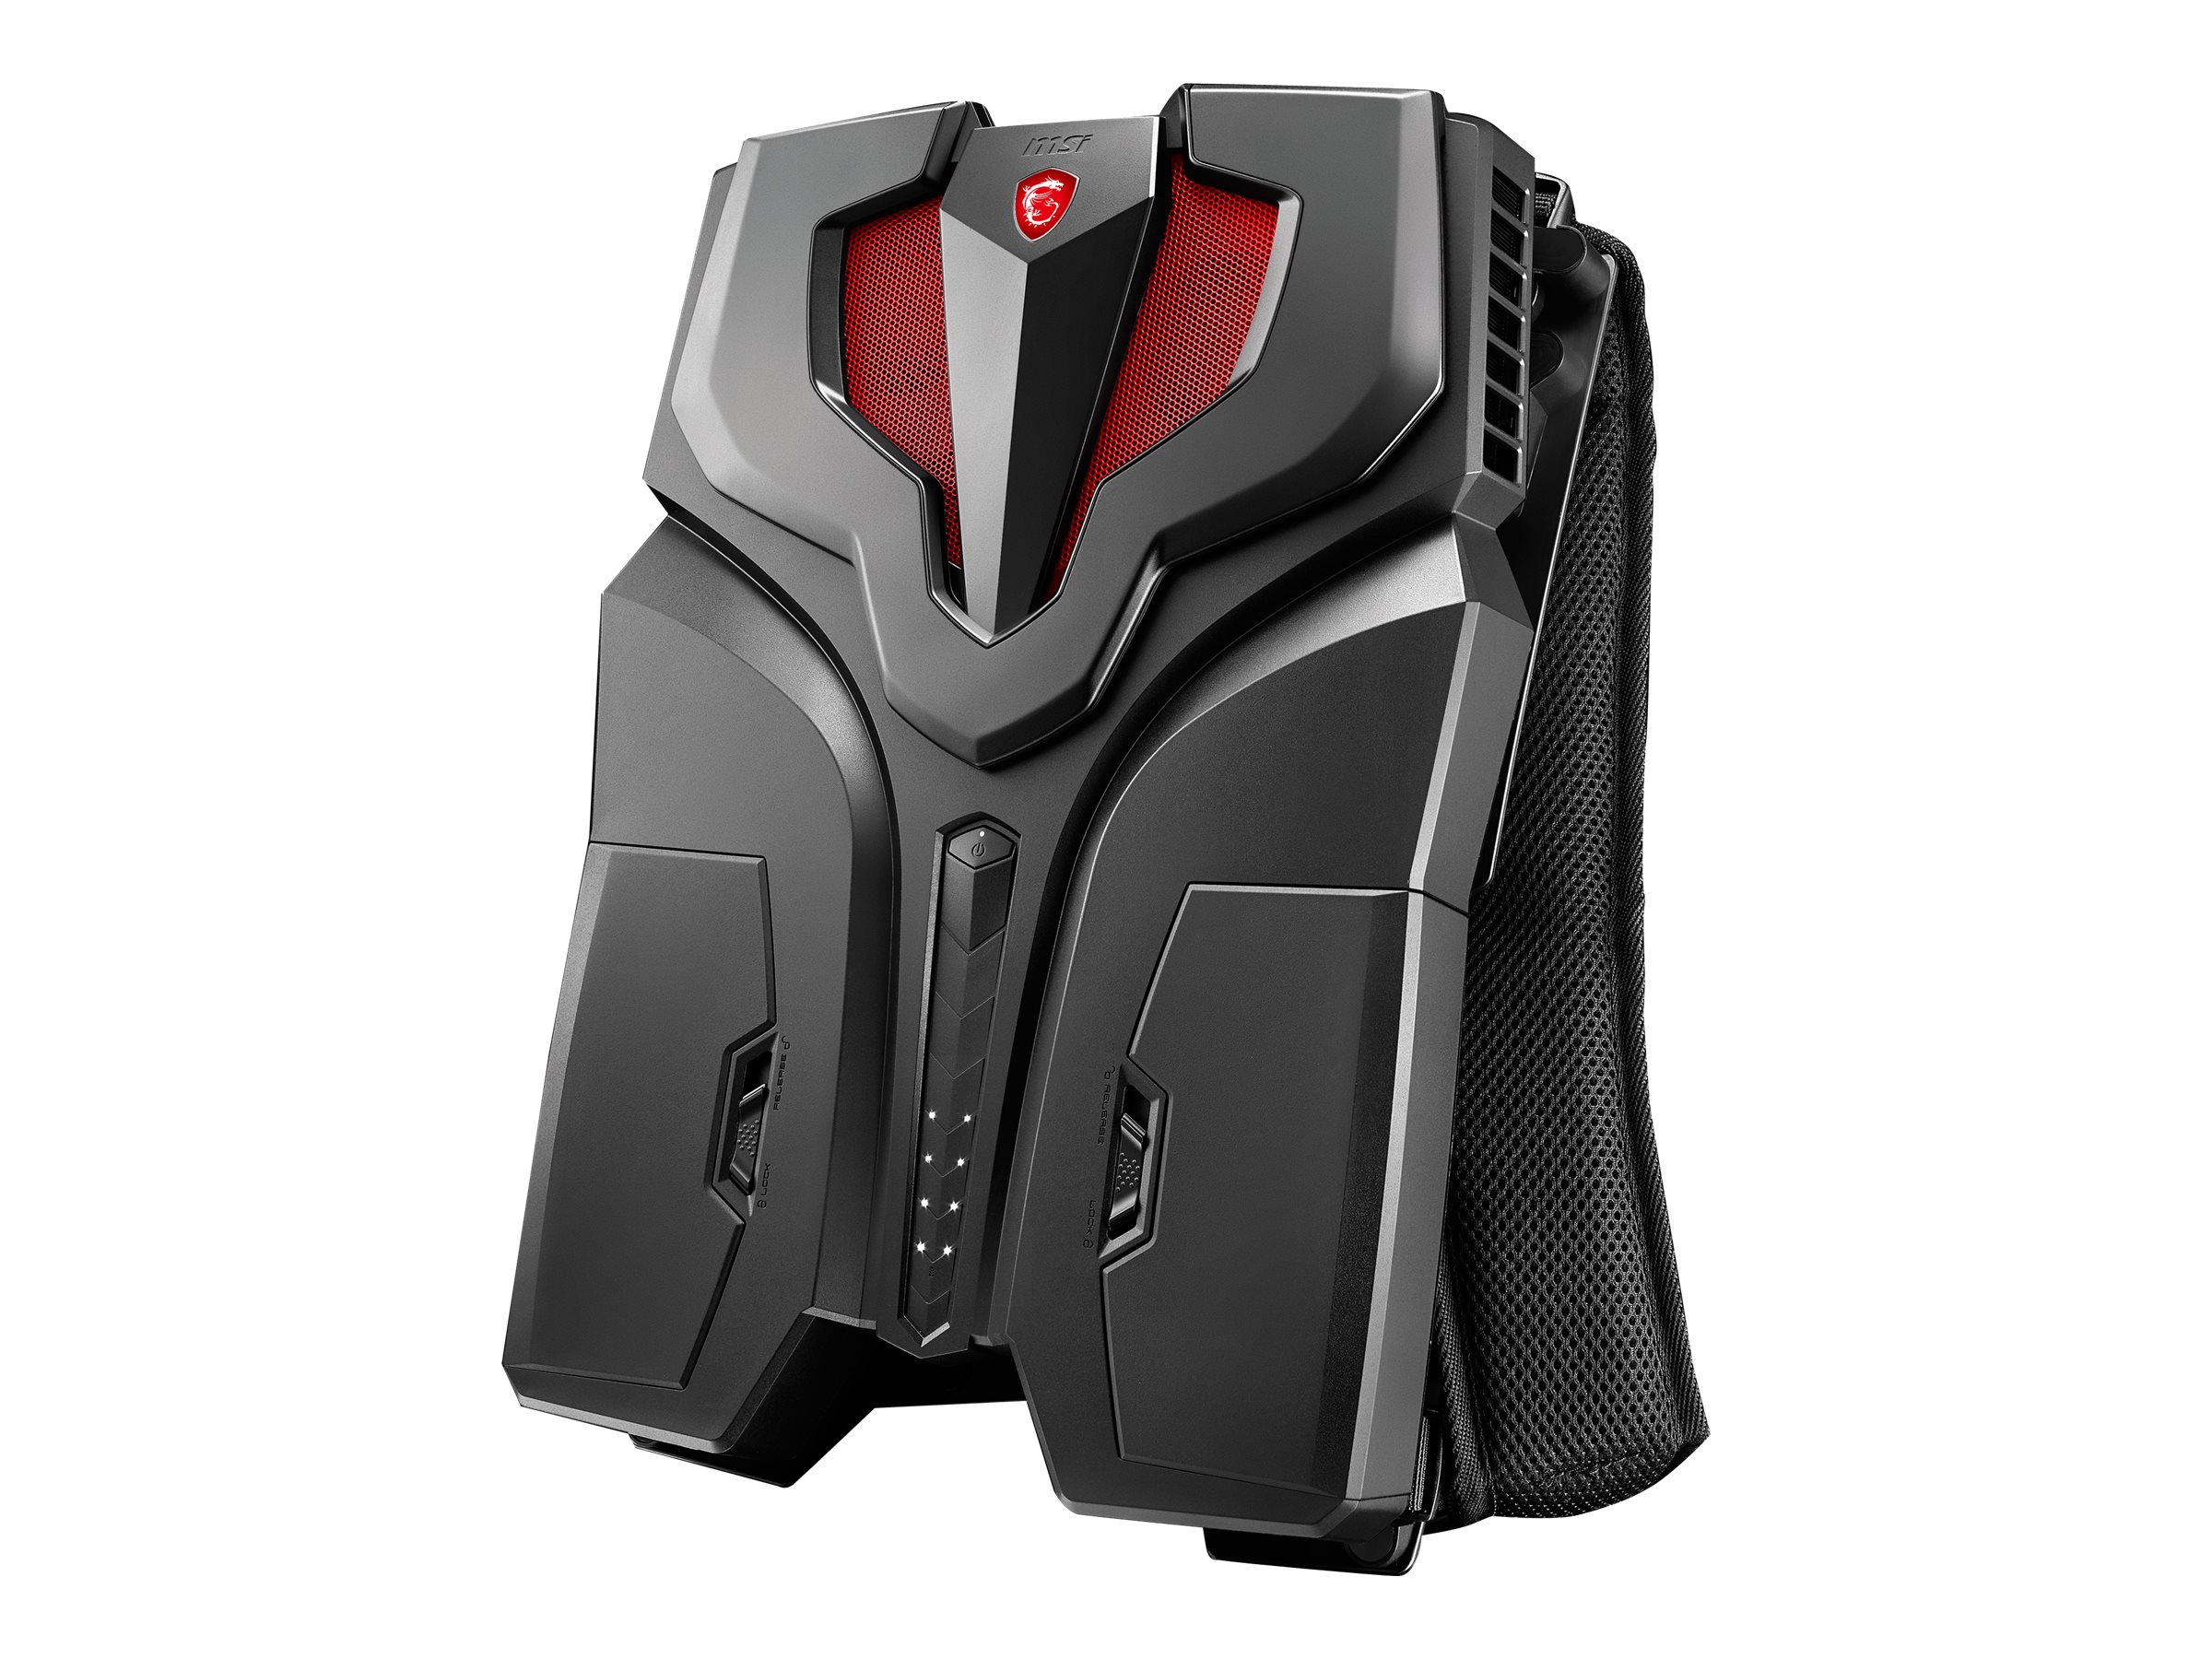 MSI VR One Backpack PC VR-Ready for HMD Core i7-6820HK GTX1070